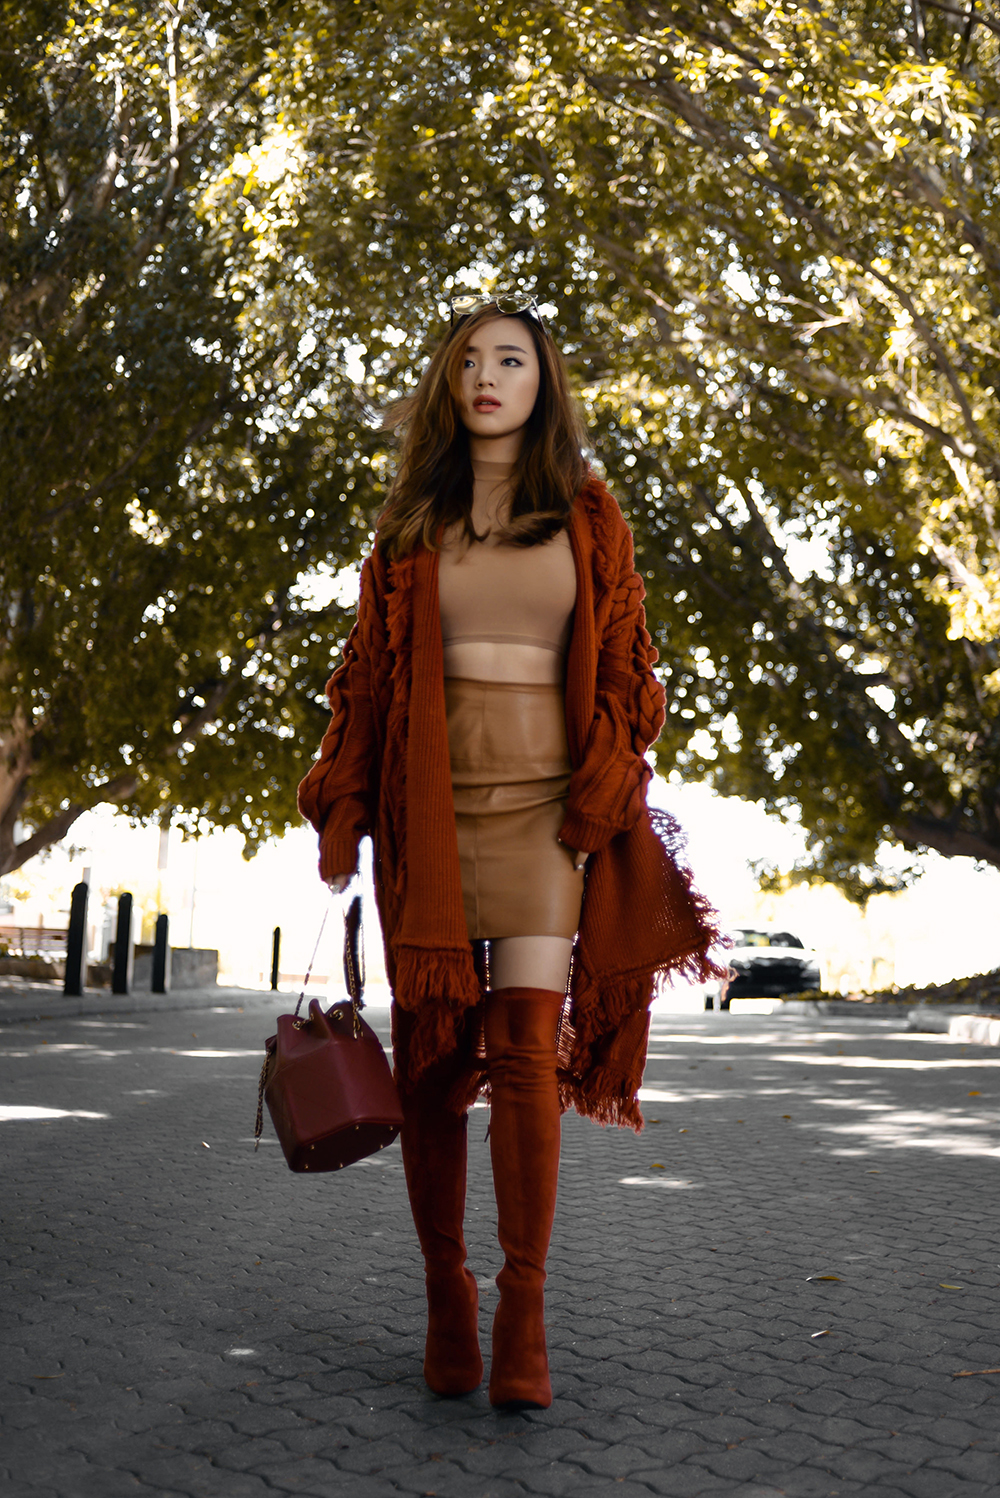 willabelle-ong-paledivision-street-style-fashion-travel-lifestyle-blog-singapore-australia-revolve-clothing-jeffrey-campbell-thigh-high-suede-red-boots-knit-cardigan-outfit-editorial-1